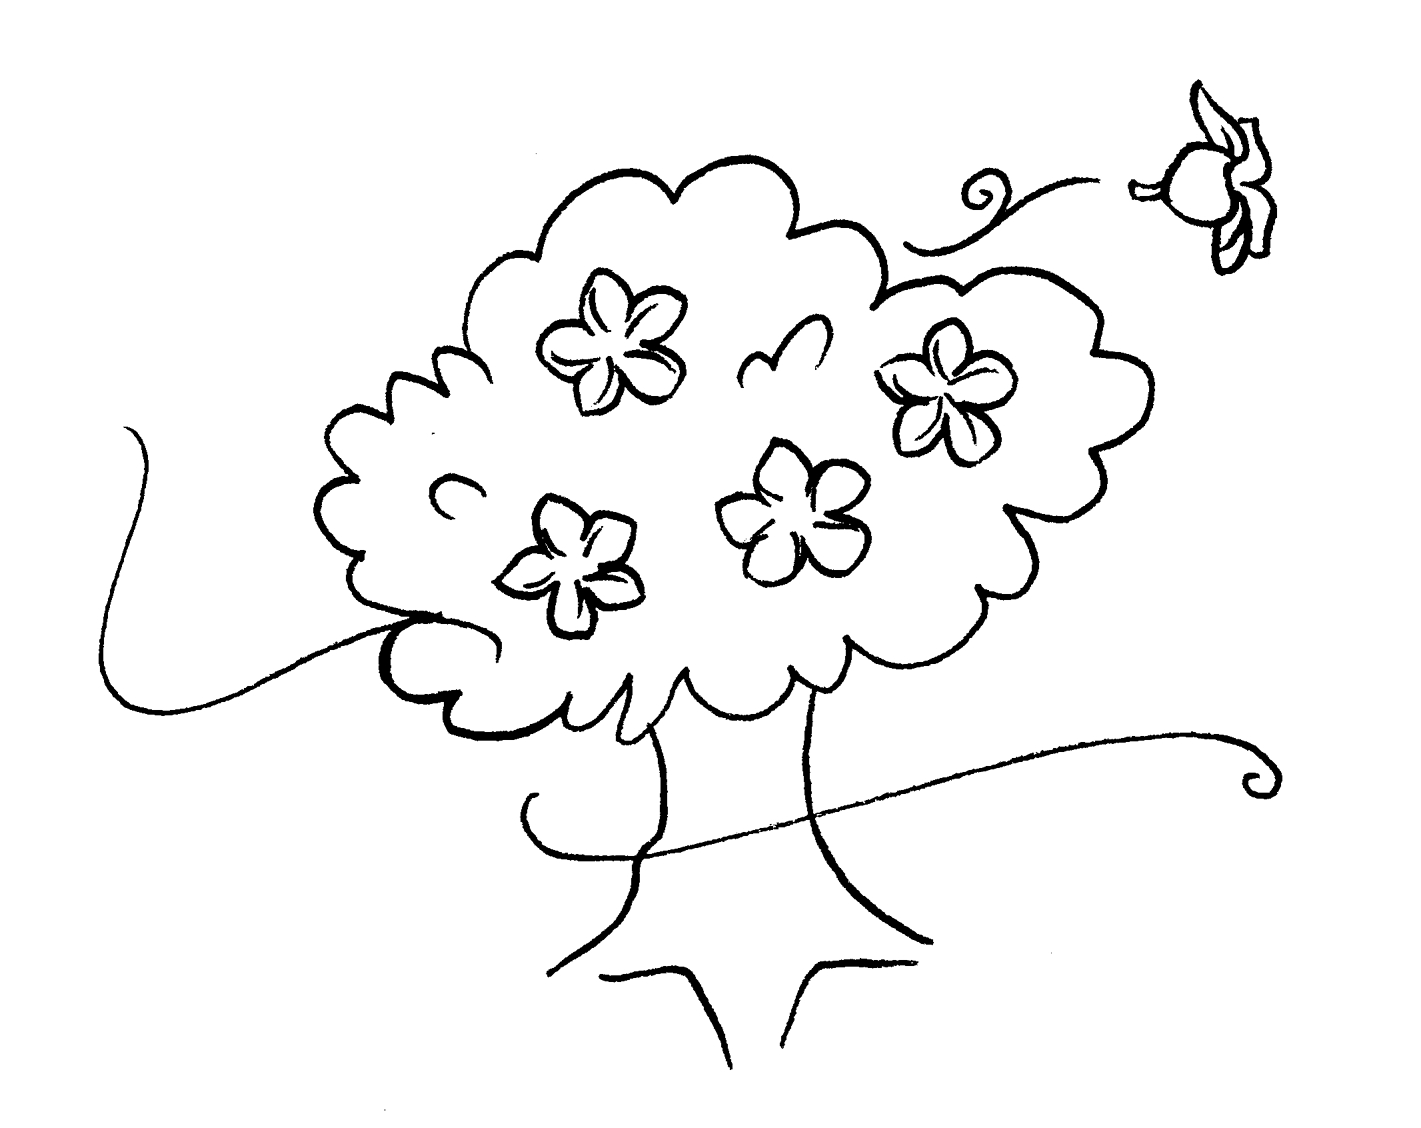 incy wincy spider colouring pages incy wincy spider coloring pages coloring pages pages spider colouring incy wincy